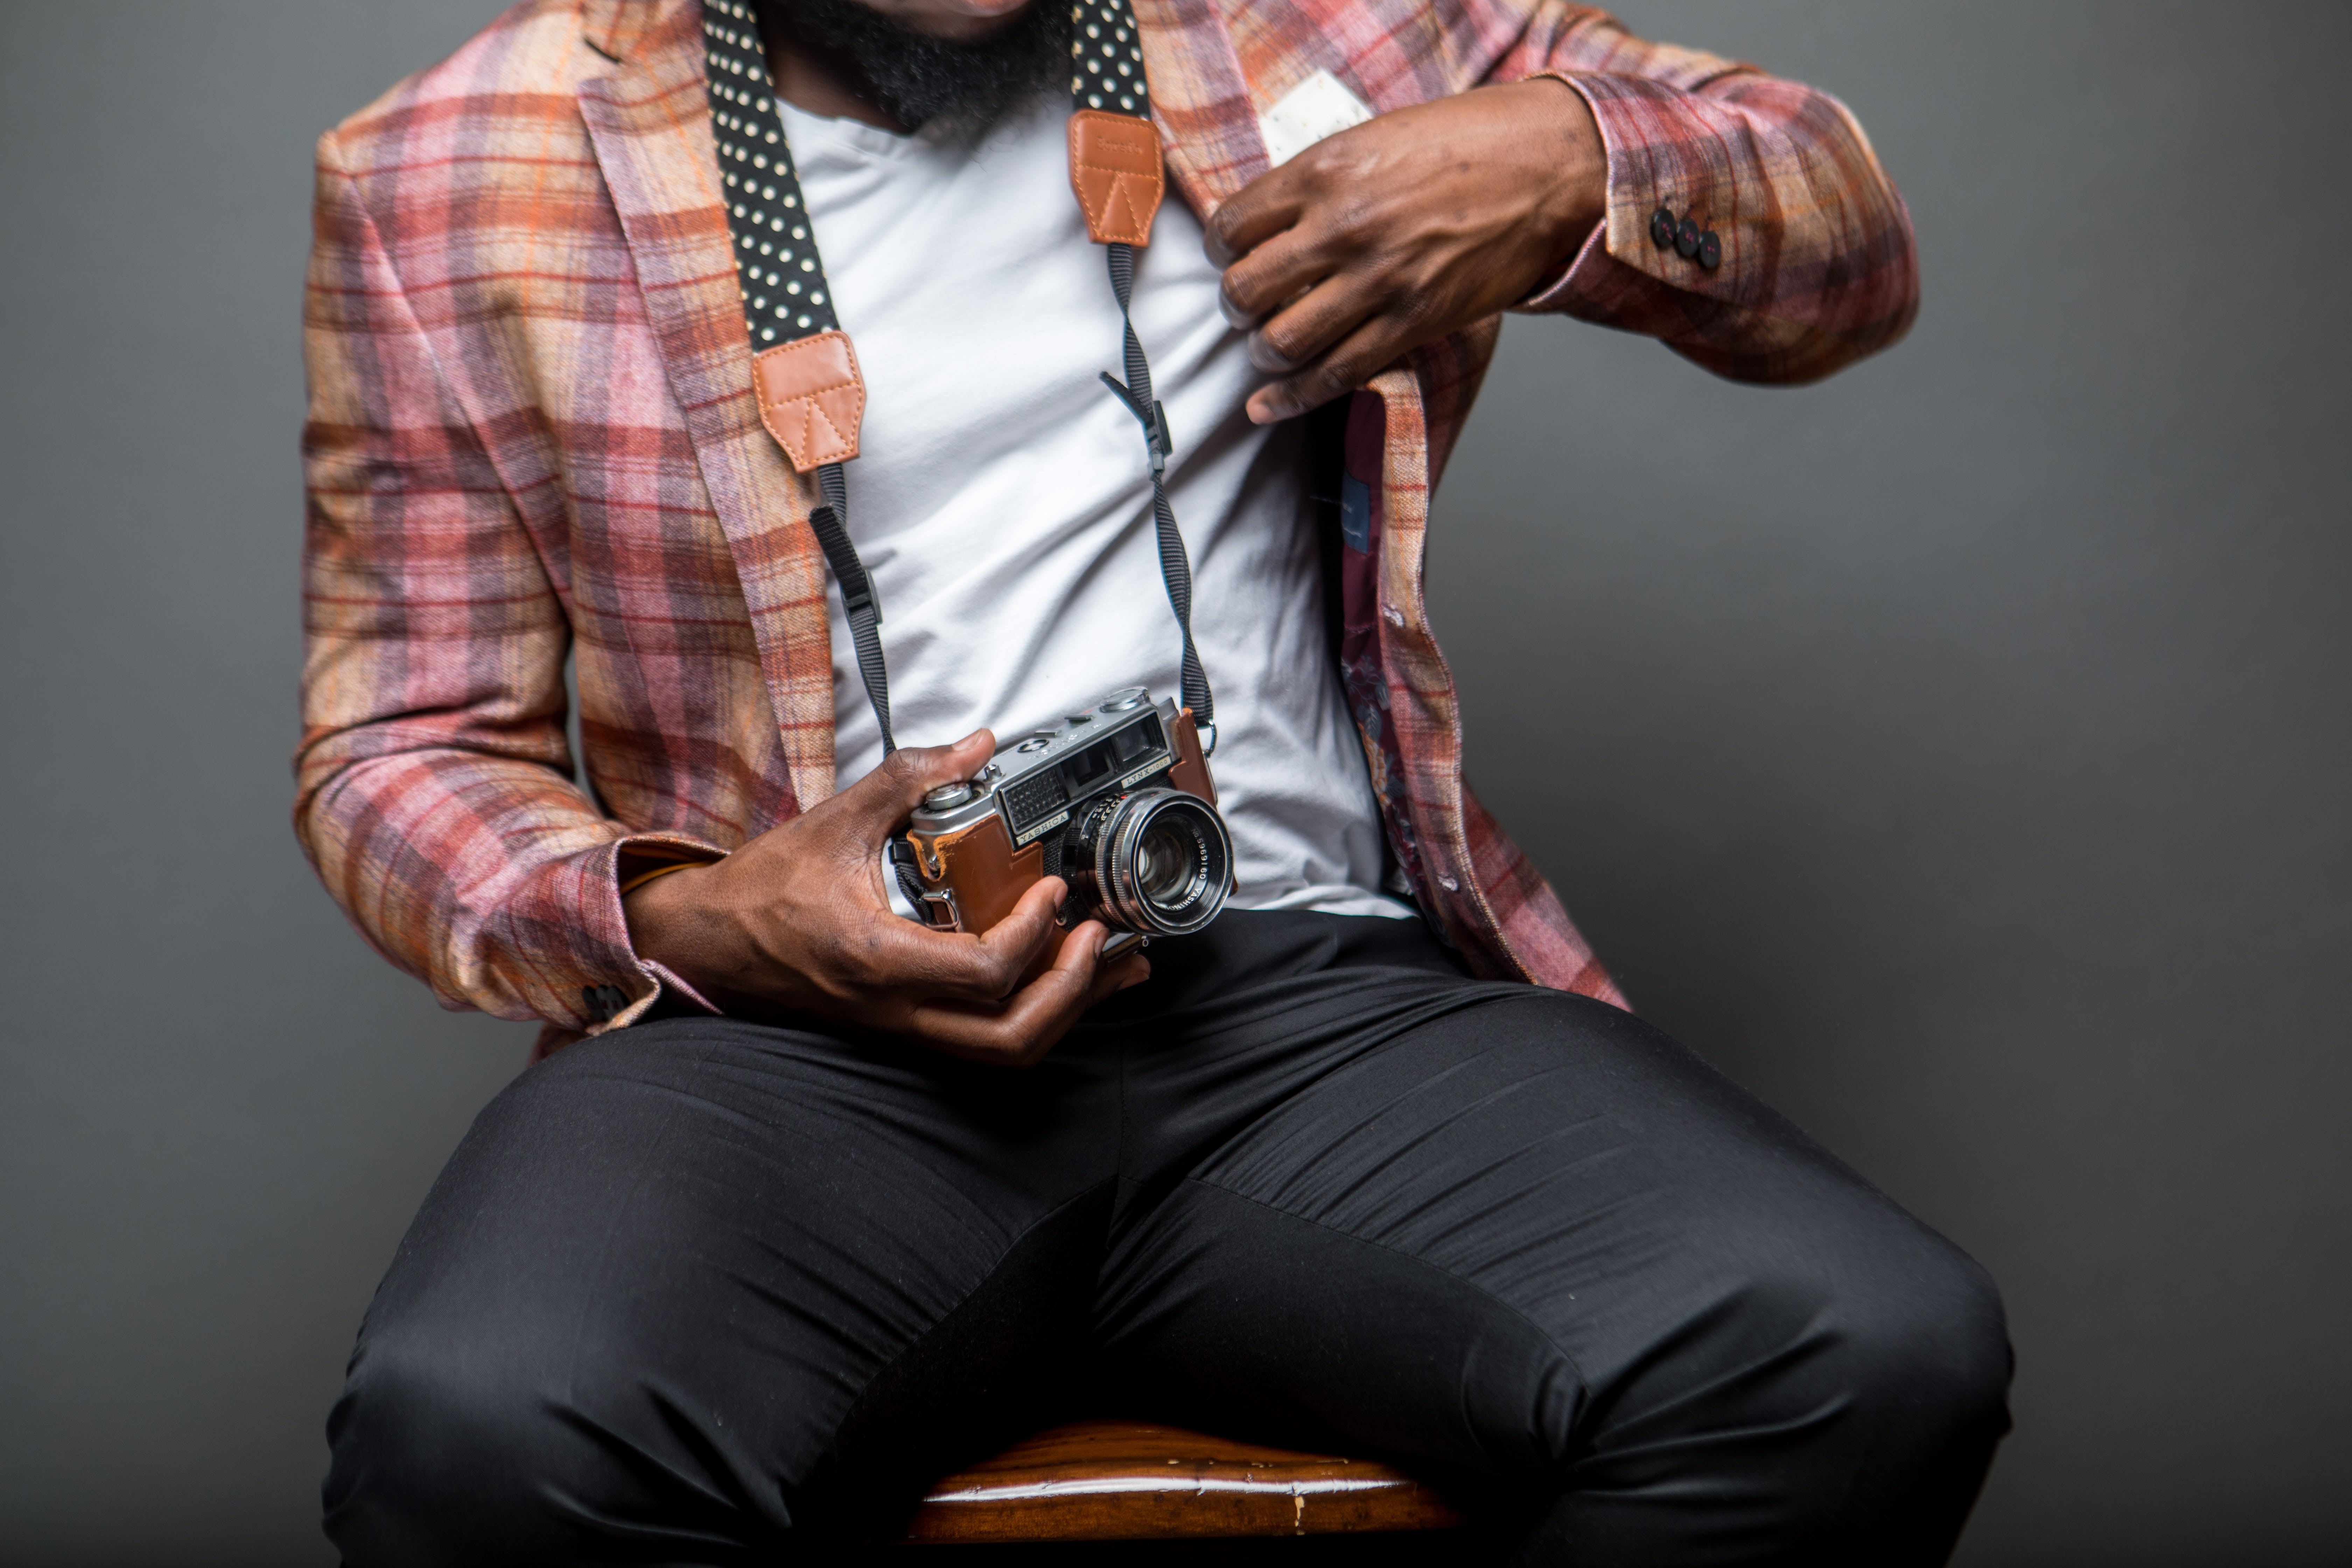 Man Wearing Button-up Shirt Holding Black and Brown Camera While Sitting on Chair